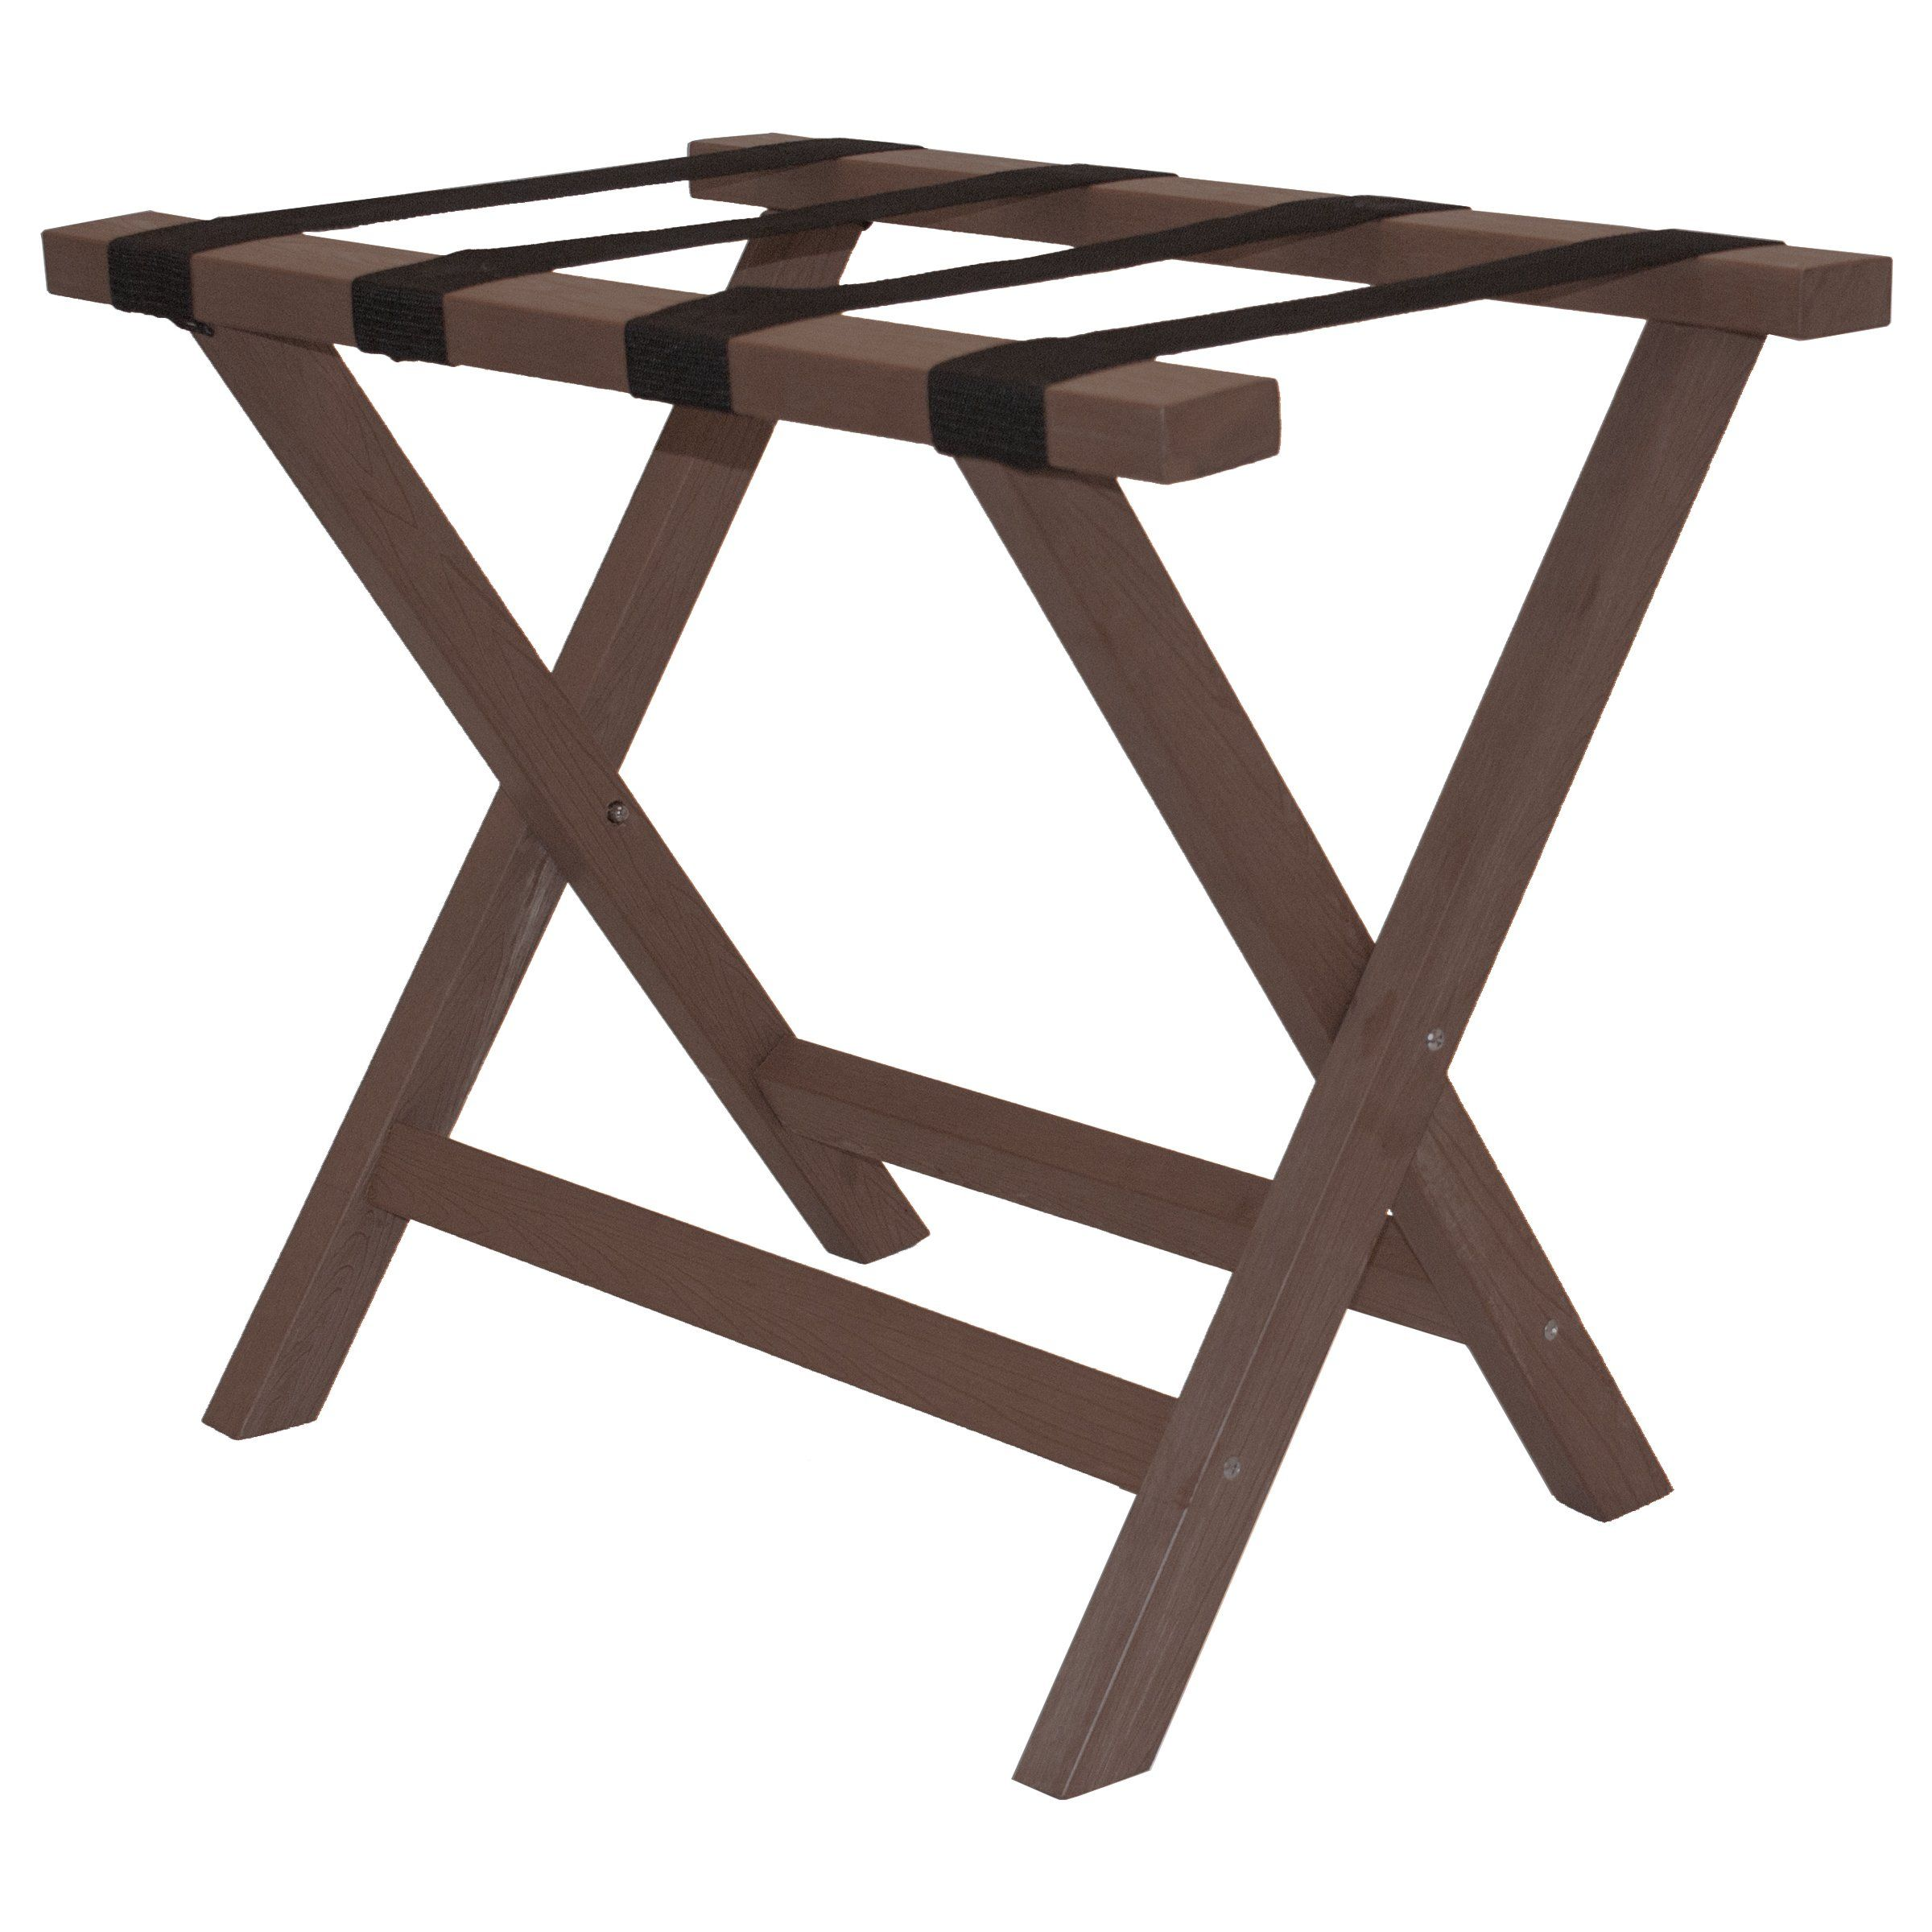 Luggage Rack Target Interesting Deluxe Composite Luggage Rack Product Dimensions 175 X 26 X 218 Inspiration Design